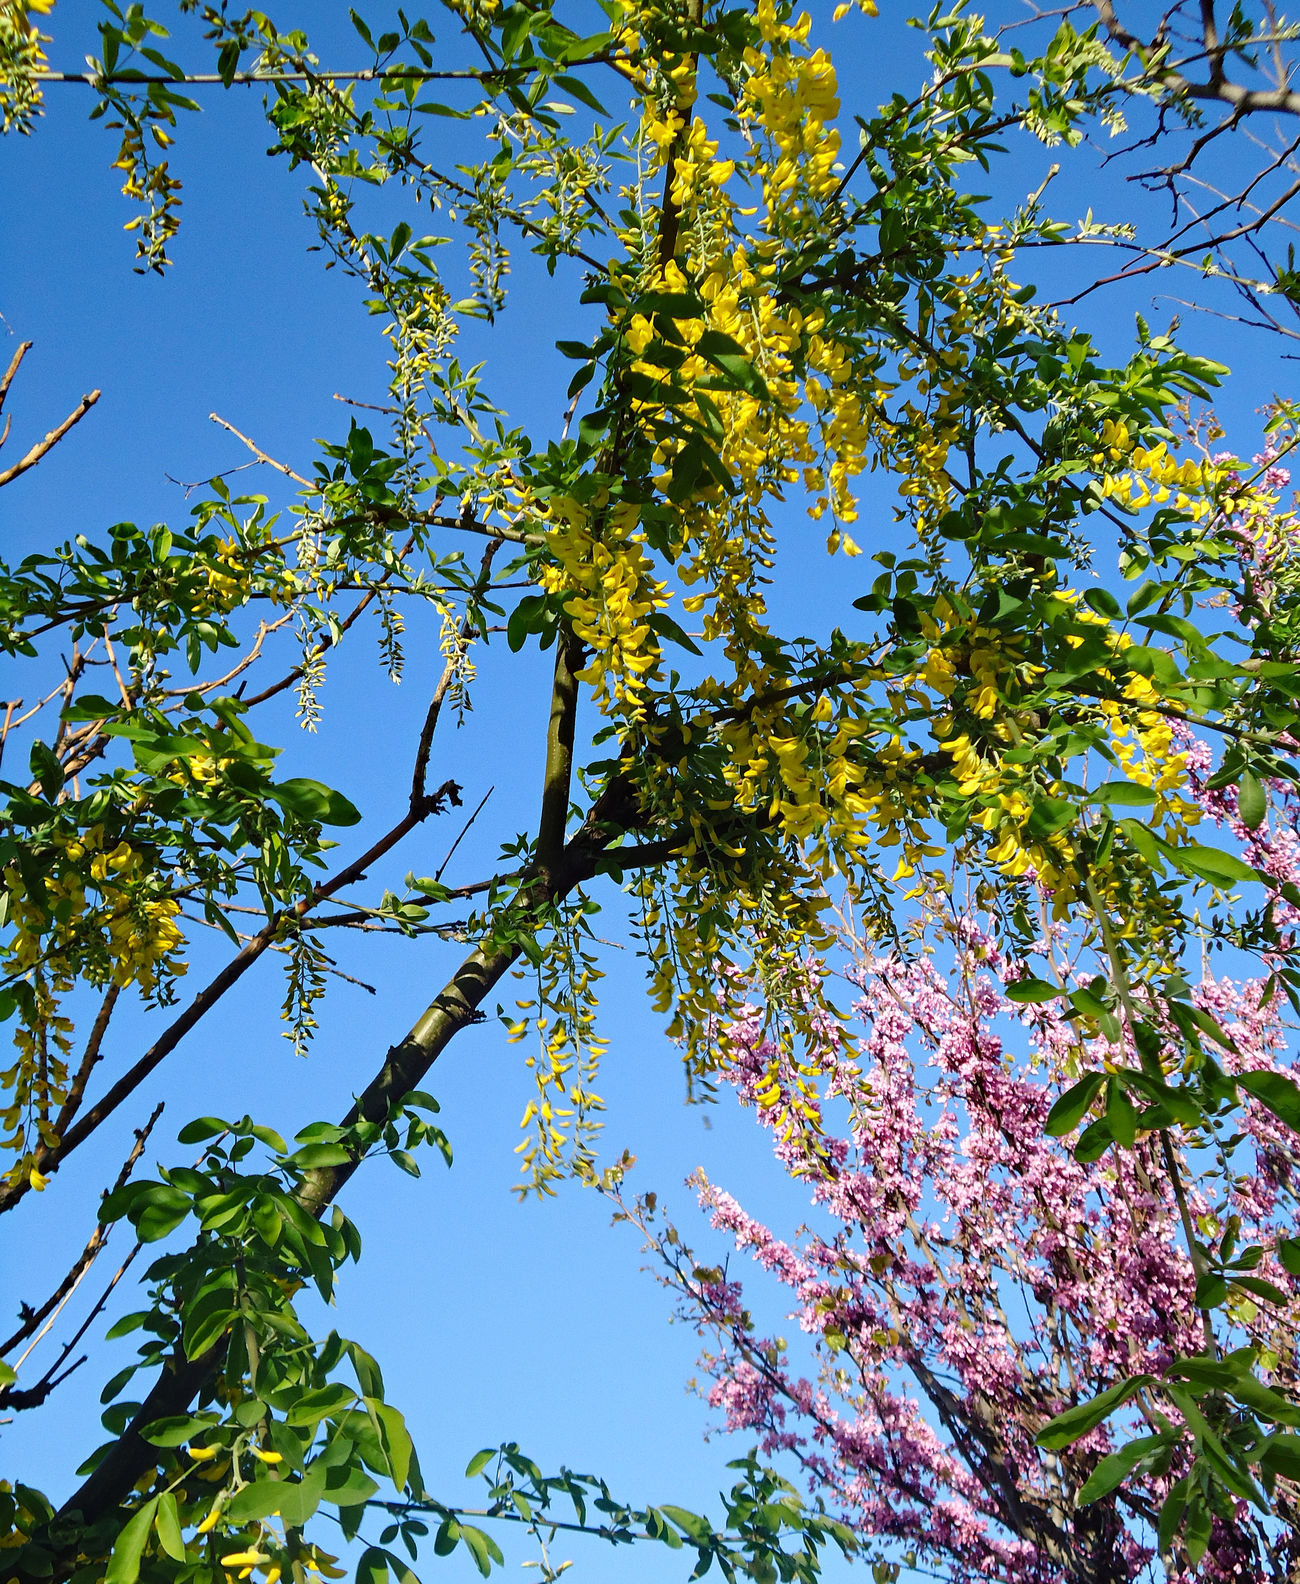 Cercis siliquastrum & Yellow Acacia. Acacia April Blooming Tree Blue Sky Branches Cercis Siliquastrum Flowerets Flowering Tree Freshness Golden Flowering Lilac Looking Up Pink-violet; Purple Spring Tree Yellow Acacia Yellow Flowering Yellow Flowering Tree Yellow Flowers Yellow-flowered